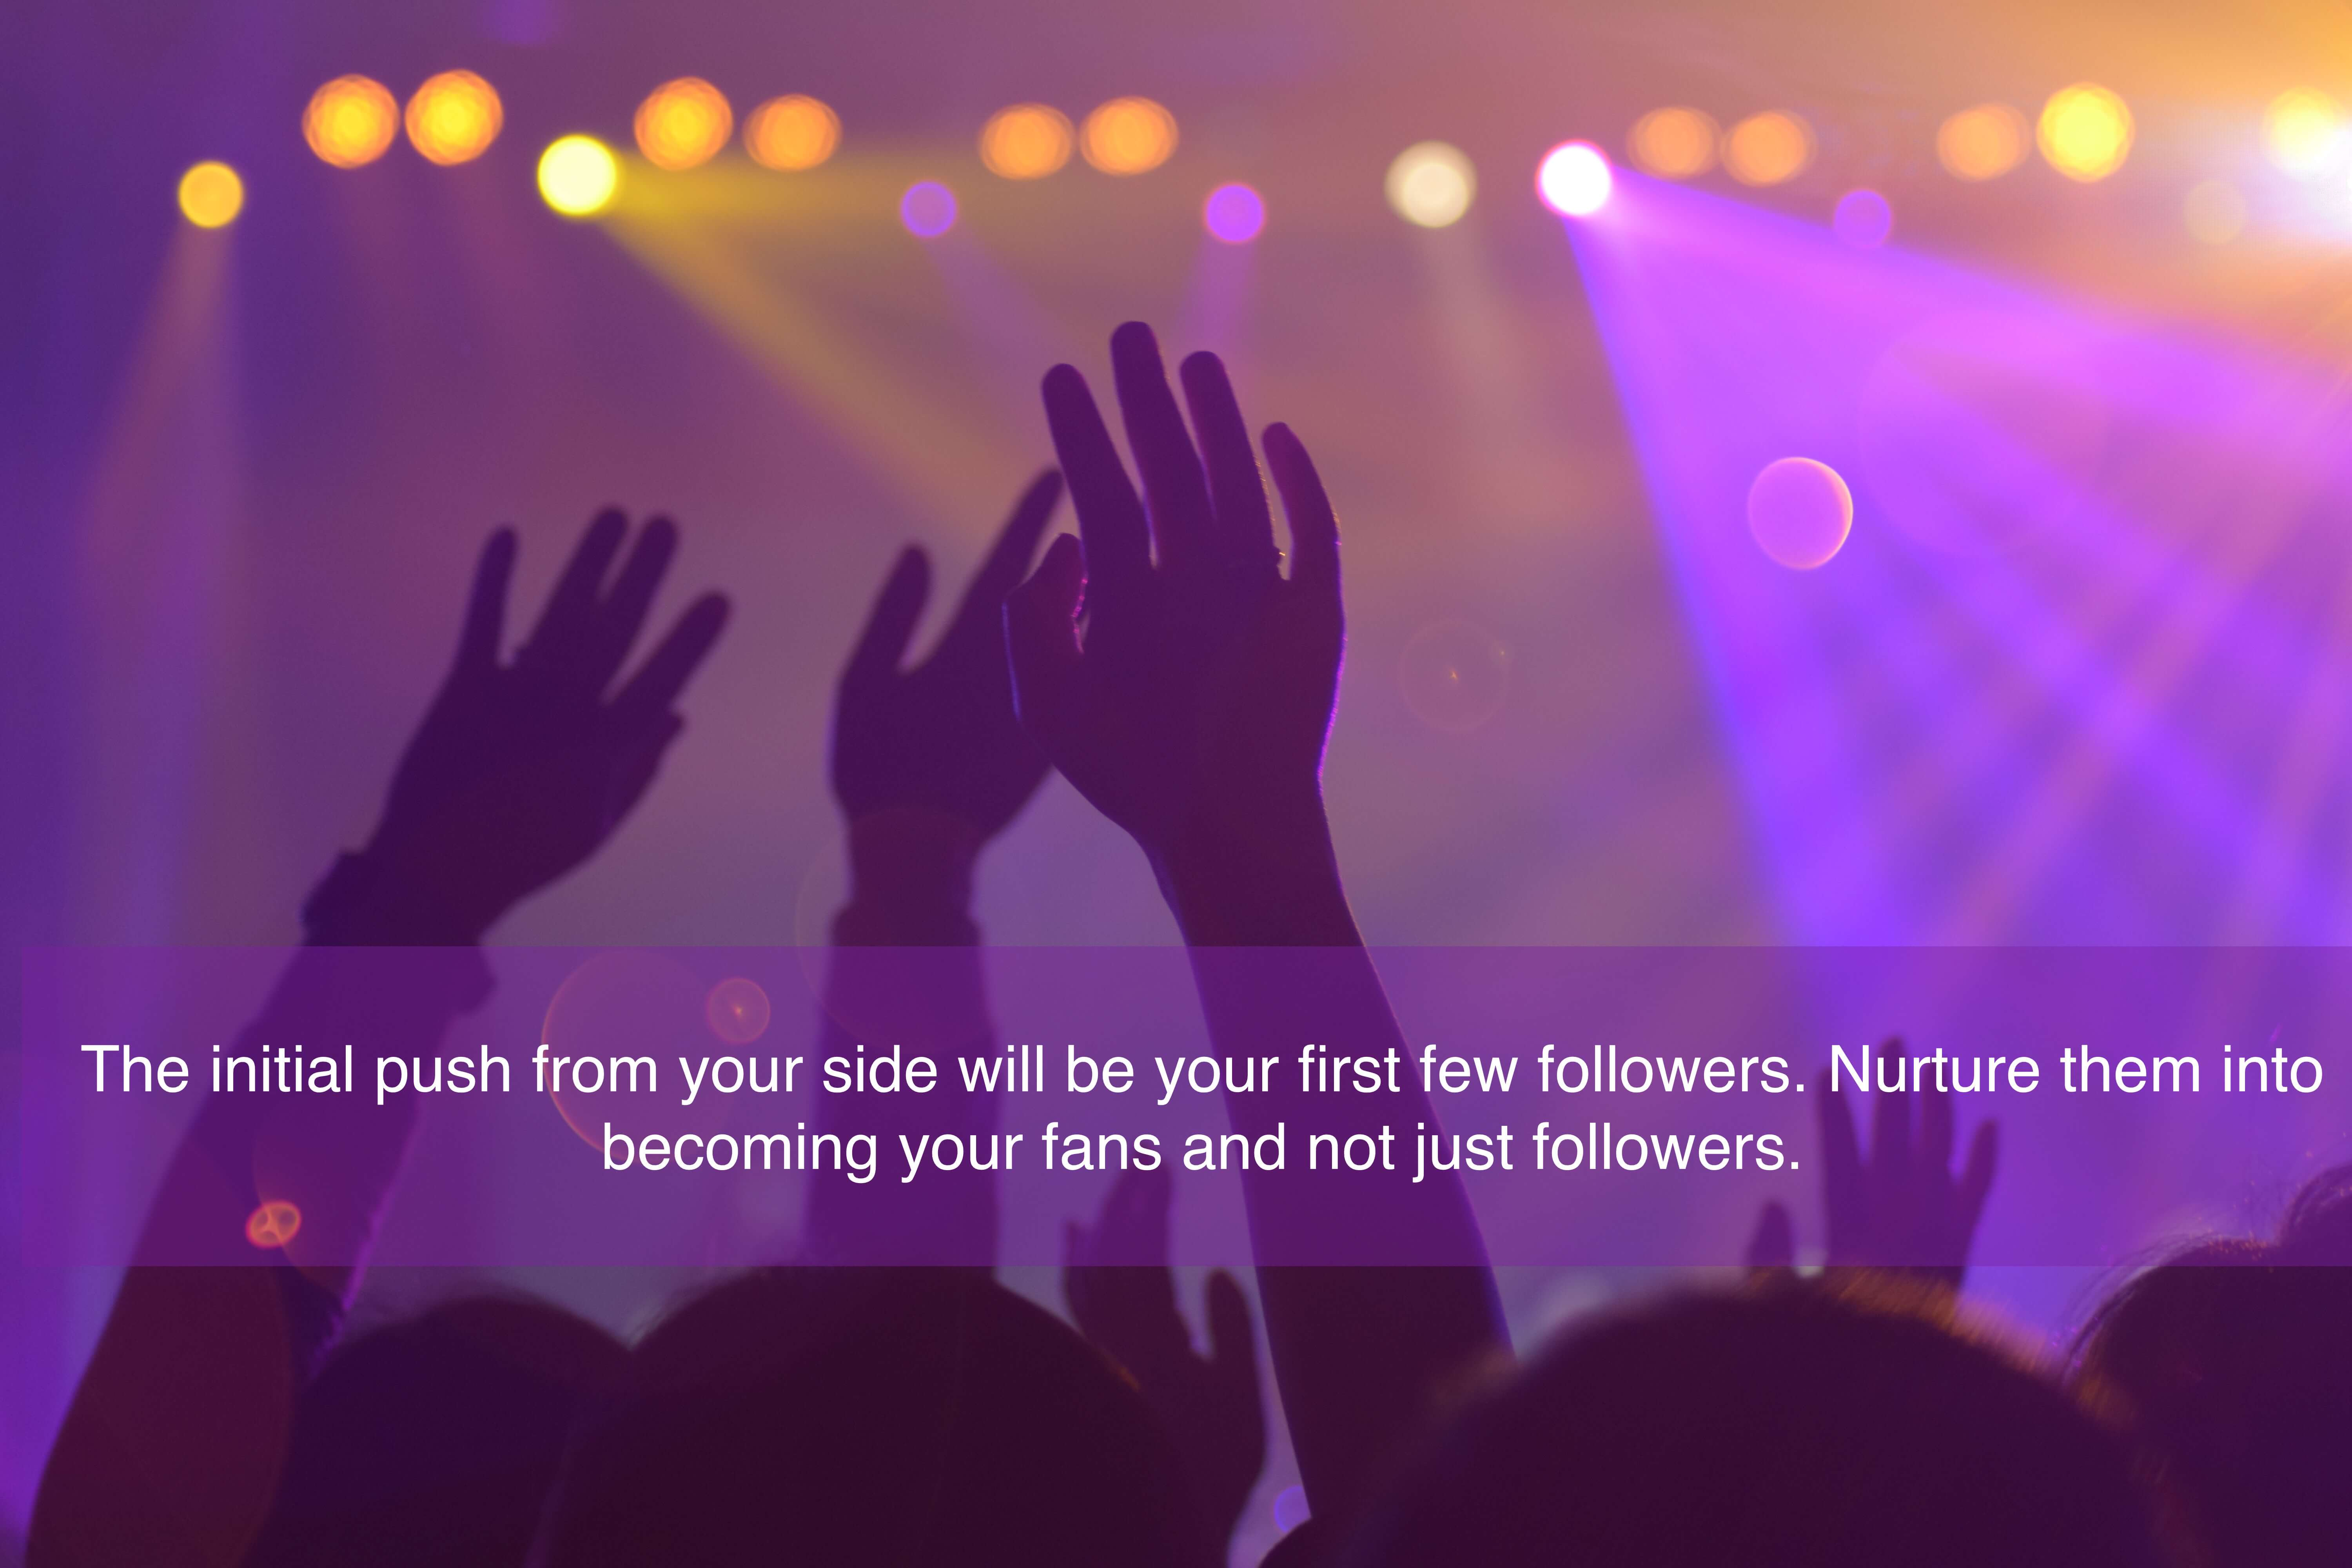 The initial push from your side will be your first few followers. Nurture them into becoming your fans and not just followers.